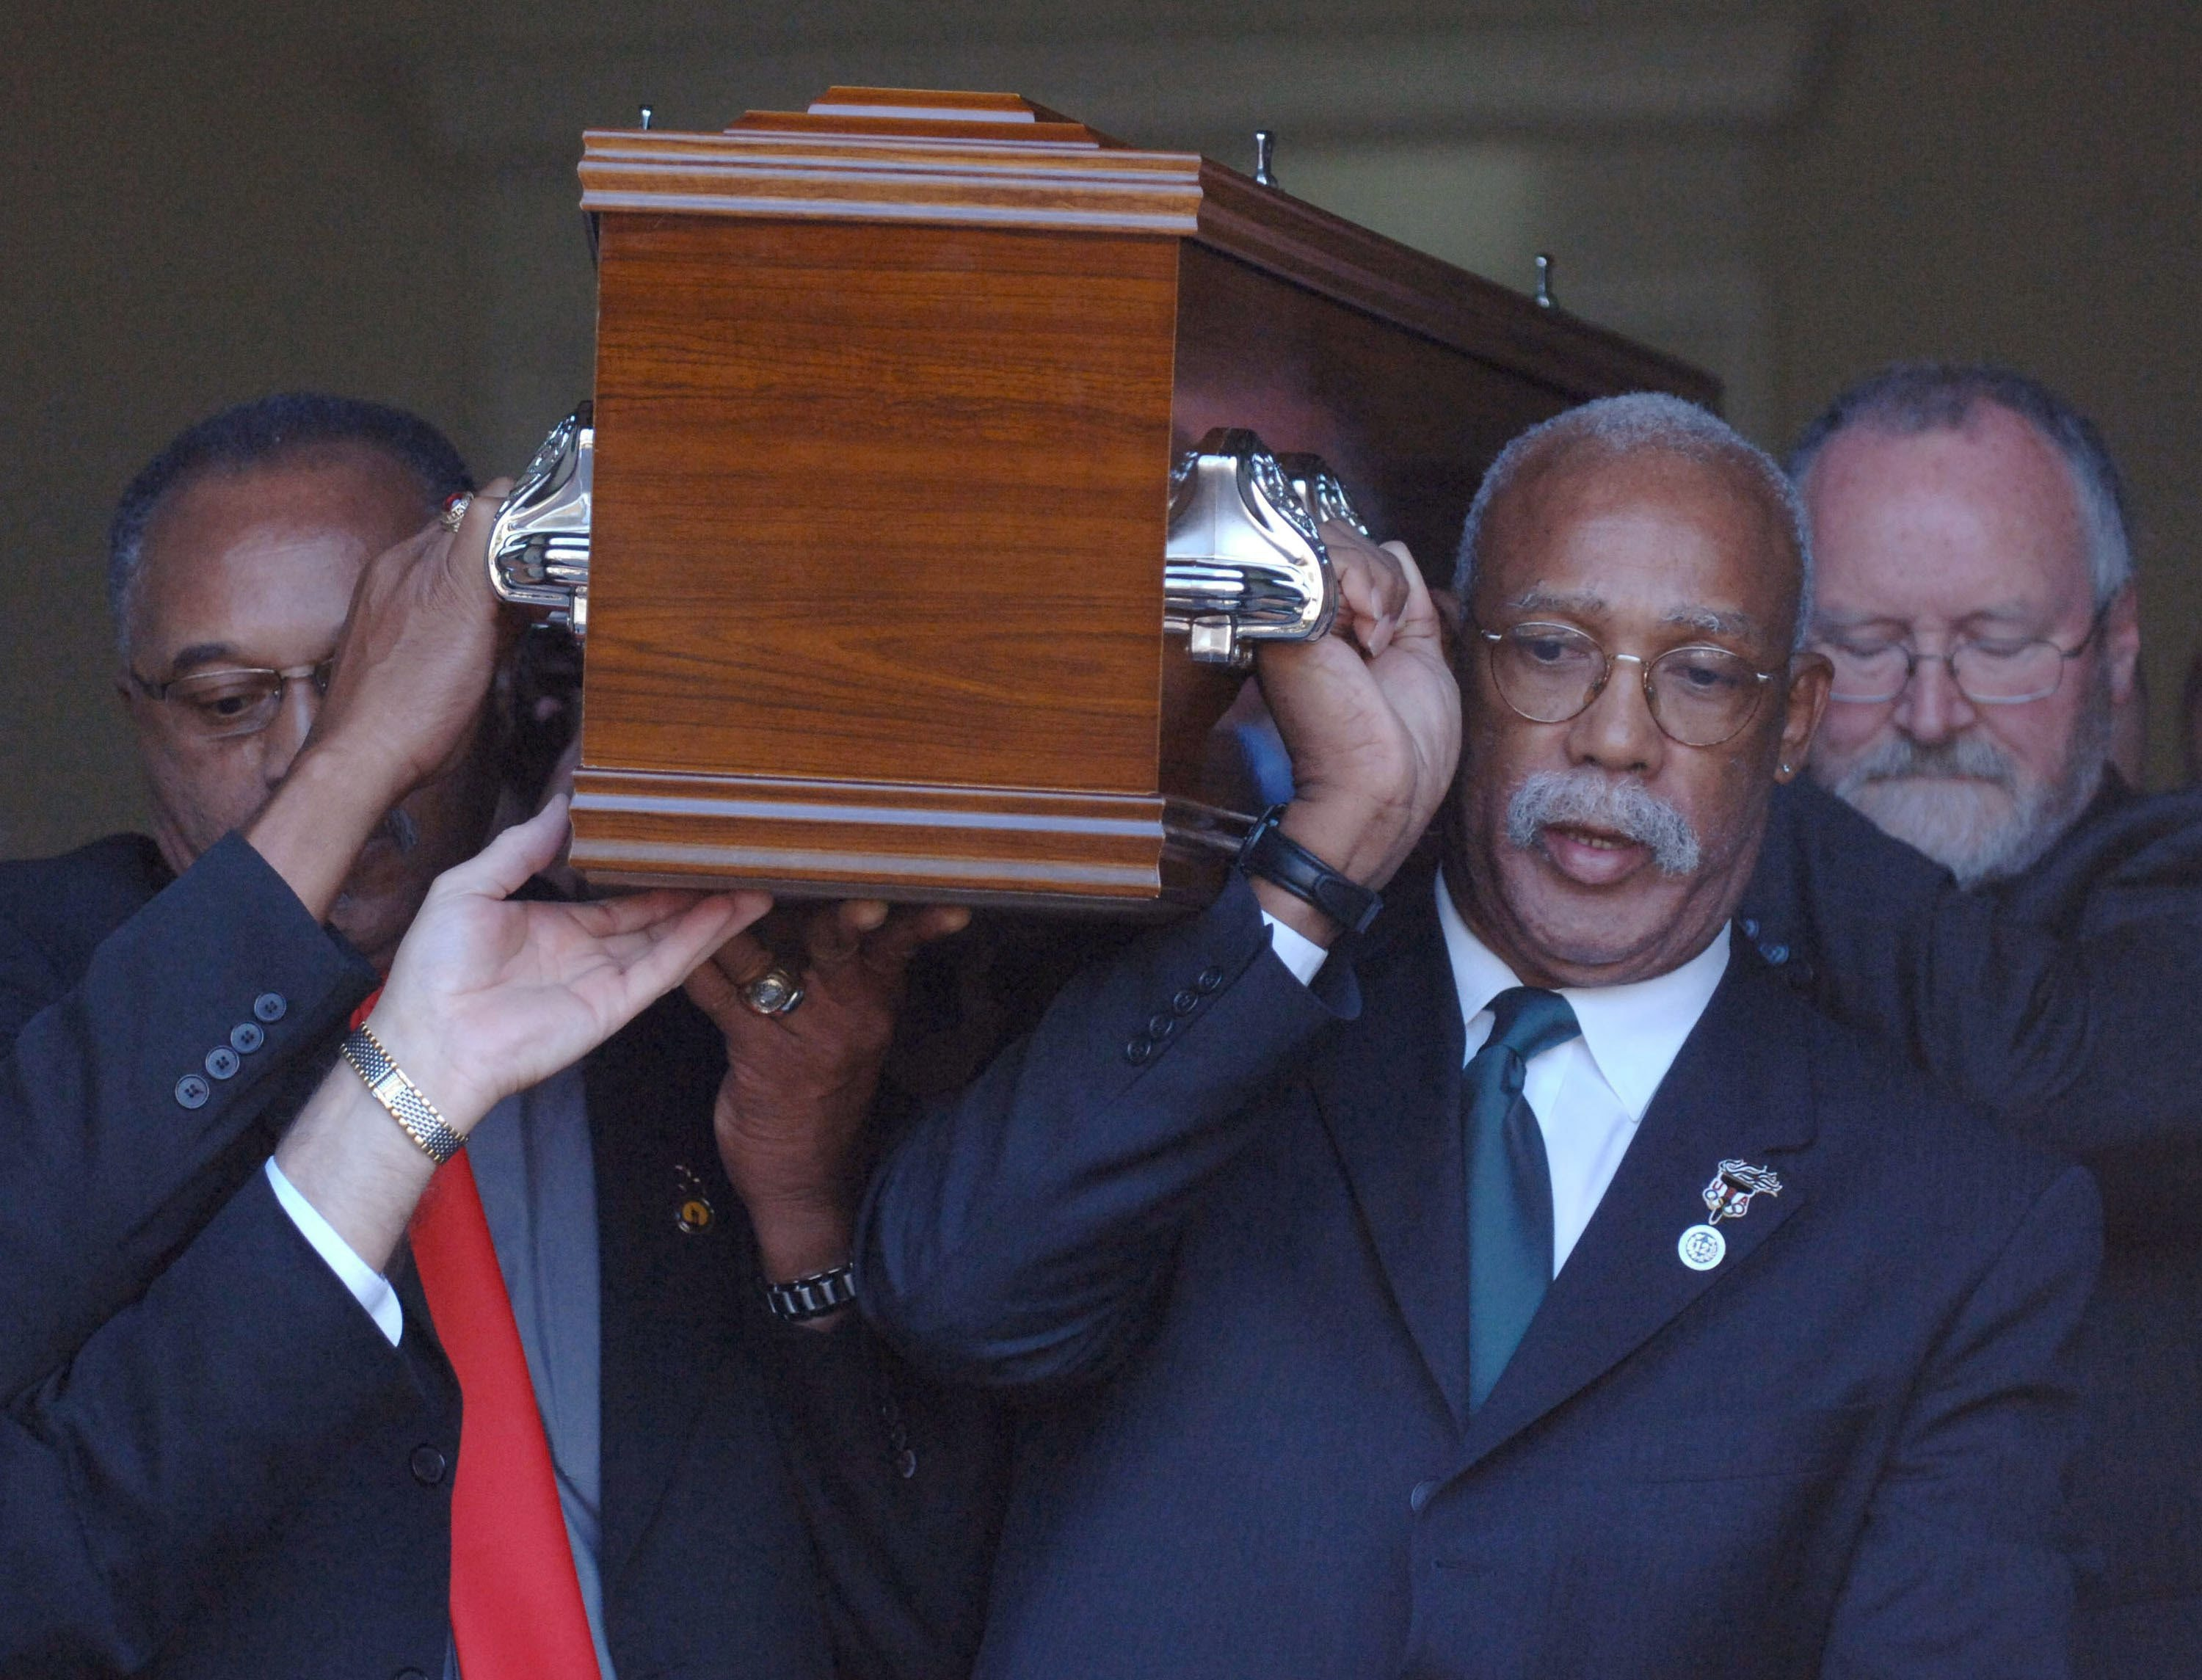 Tommie Smith, left, and John Carlos, right, who gave the historic Black Power salutes at the 1968 Olympics, reunite for the final time with the third man on the podium that year as they as they act as pallbearers for Peter Norman at his funeral in Melbourne, Australia in 2006. (AP Photo)